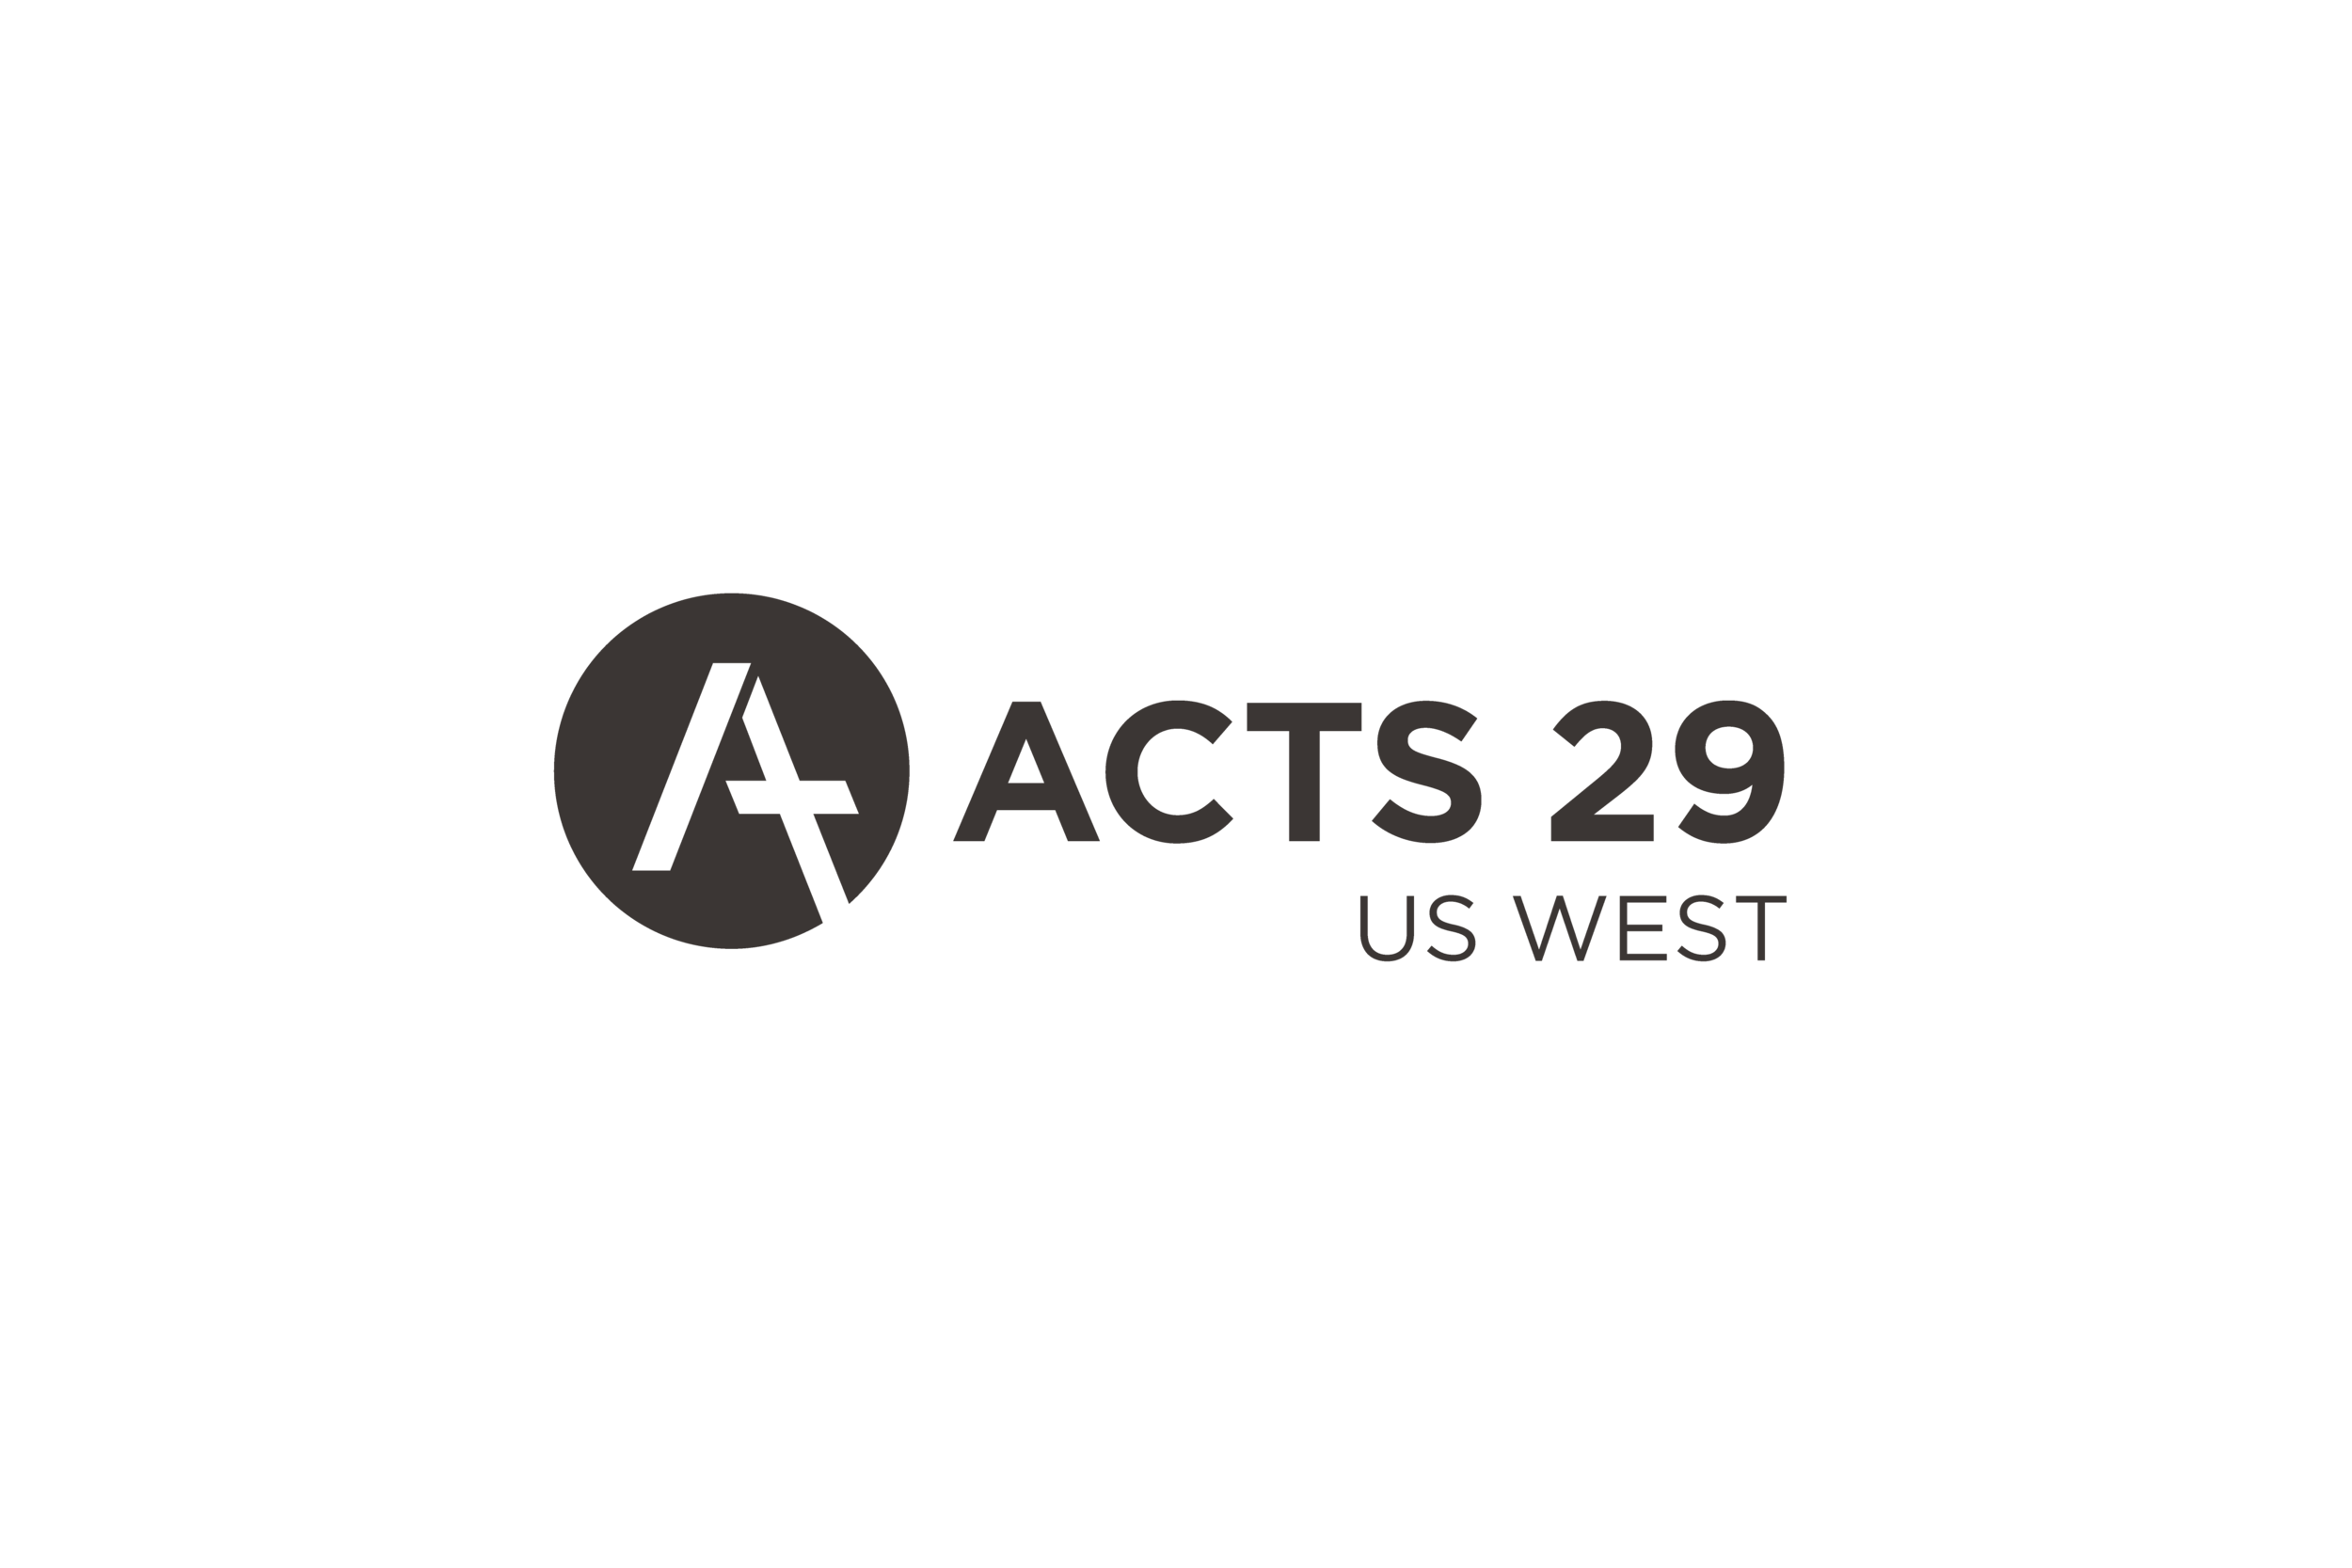 Acts 29 Logo - US West-01.png